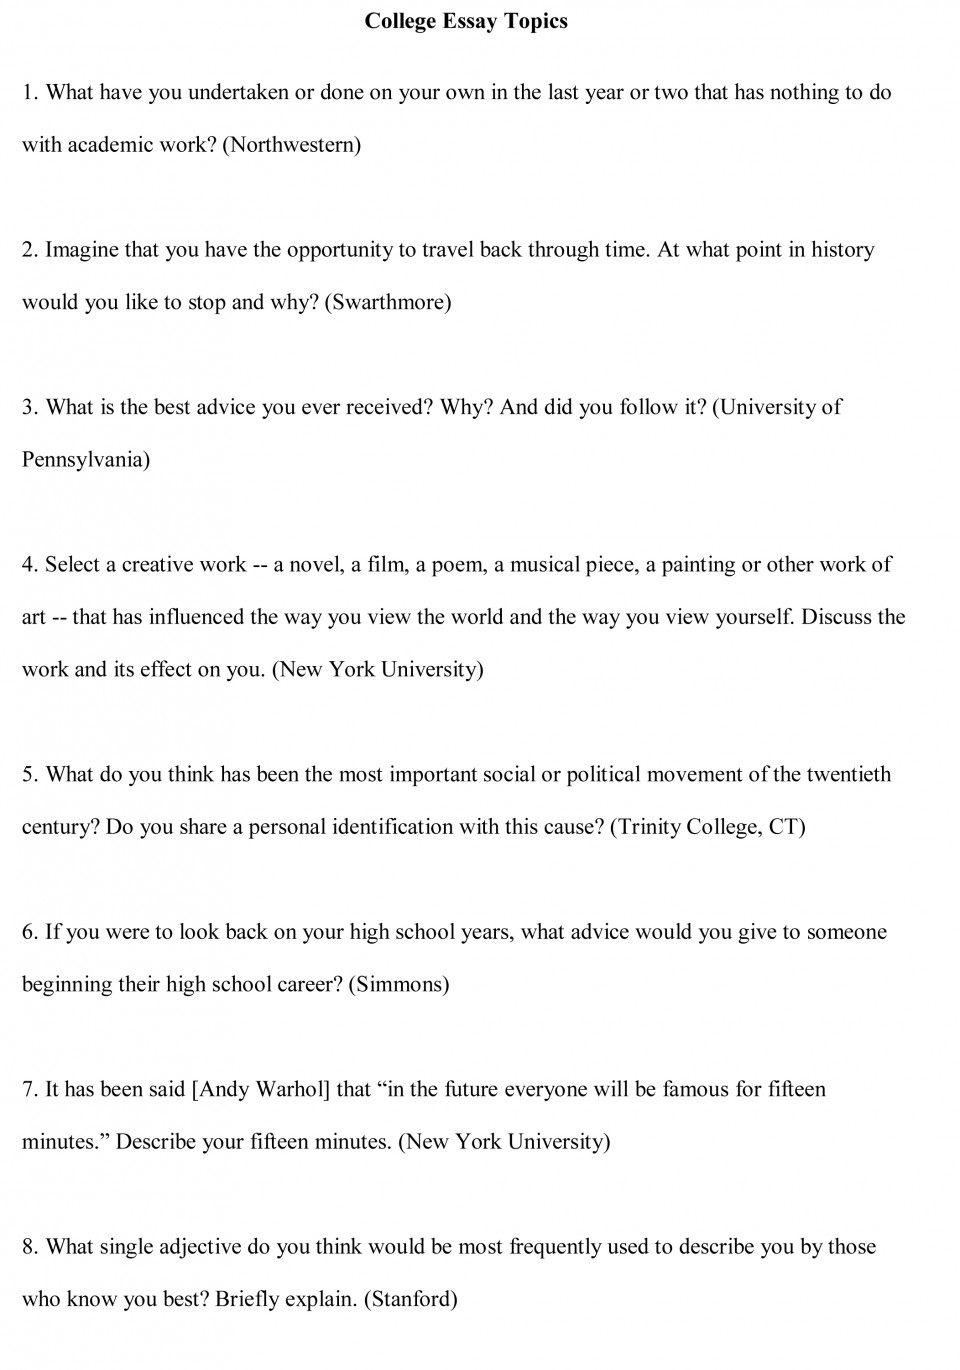 003 College Essay Topics Free Sample1 Prompts Impressive About Yourself Texas Tech 960